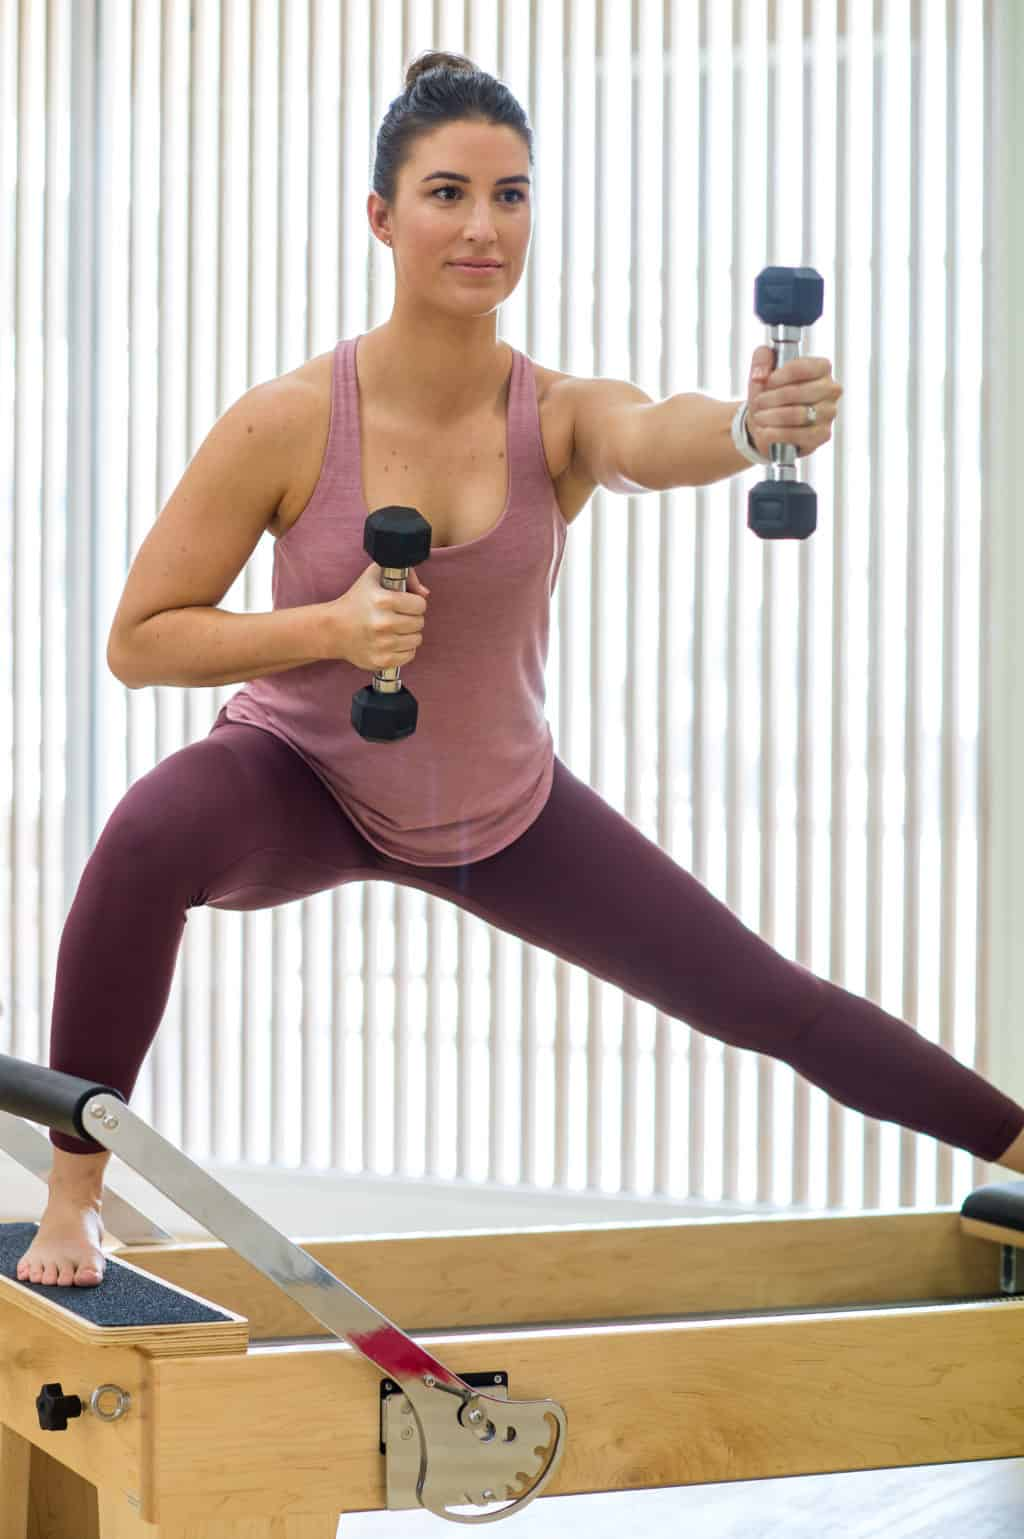 The Wellness Boutique Burleigh Womens health physiotherapy and pilates 185